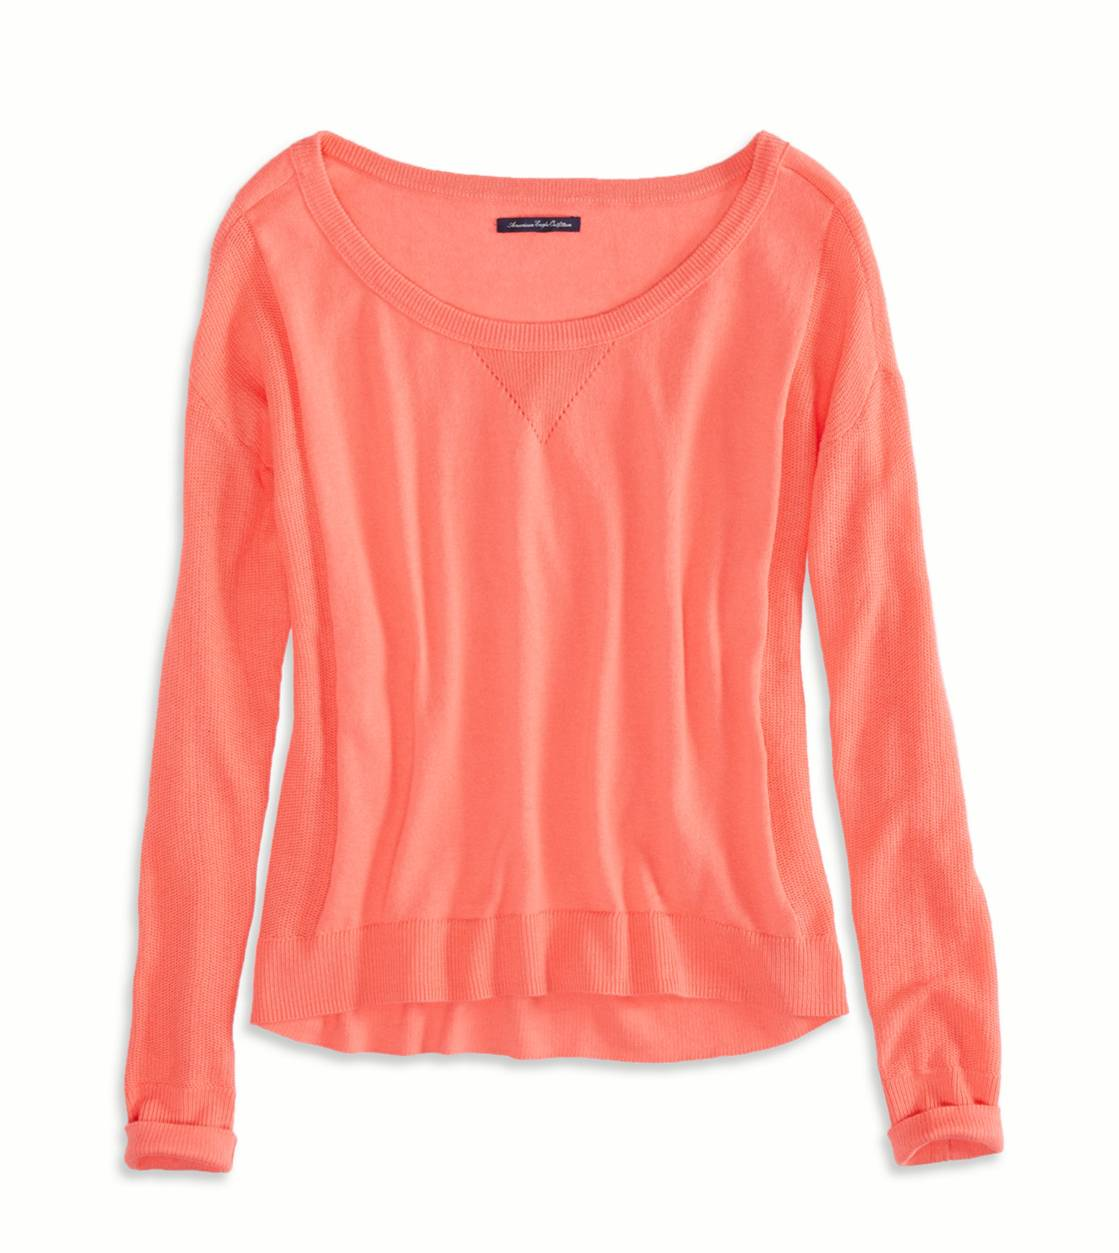 Coral AE Real Soft Fireside Sweater